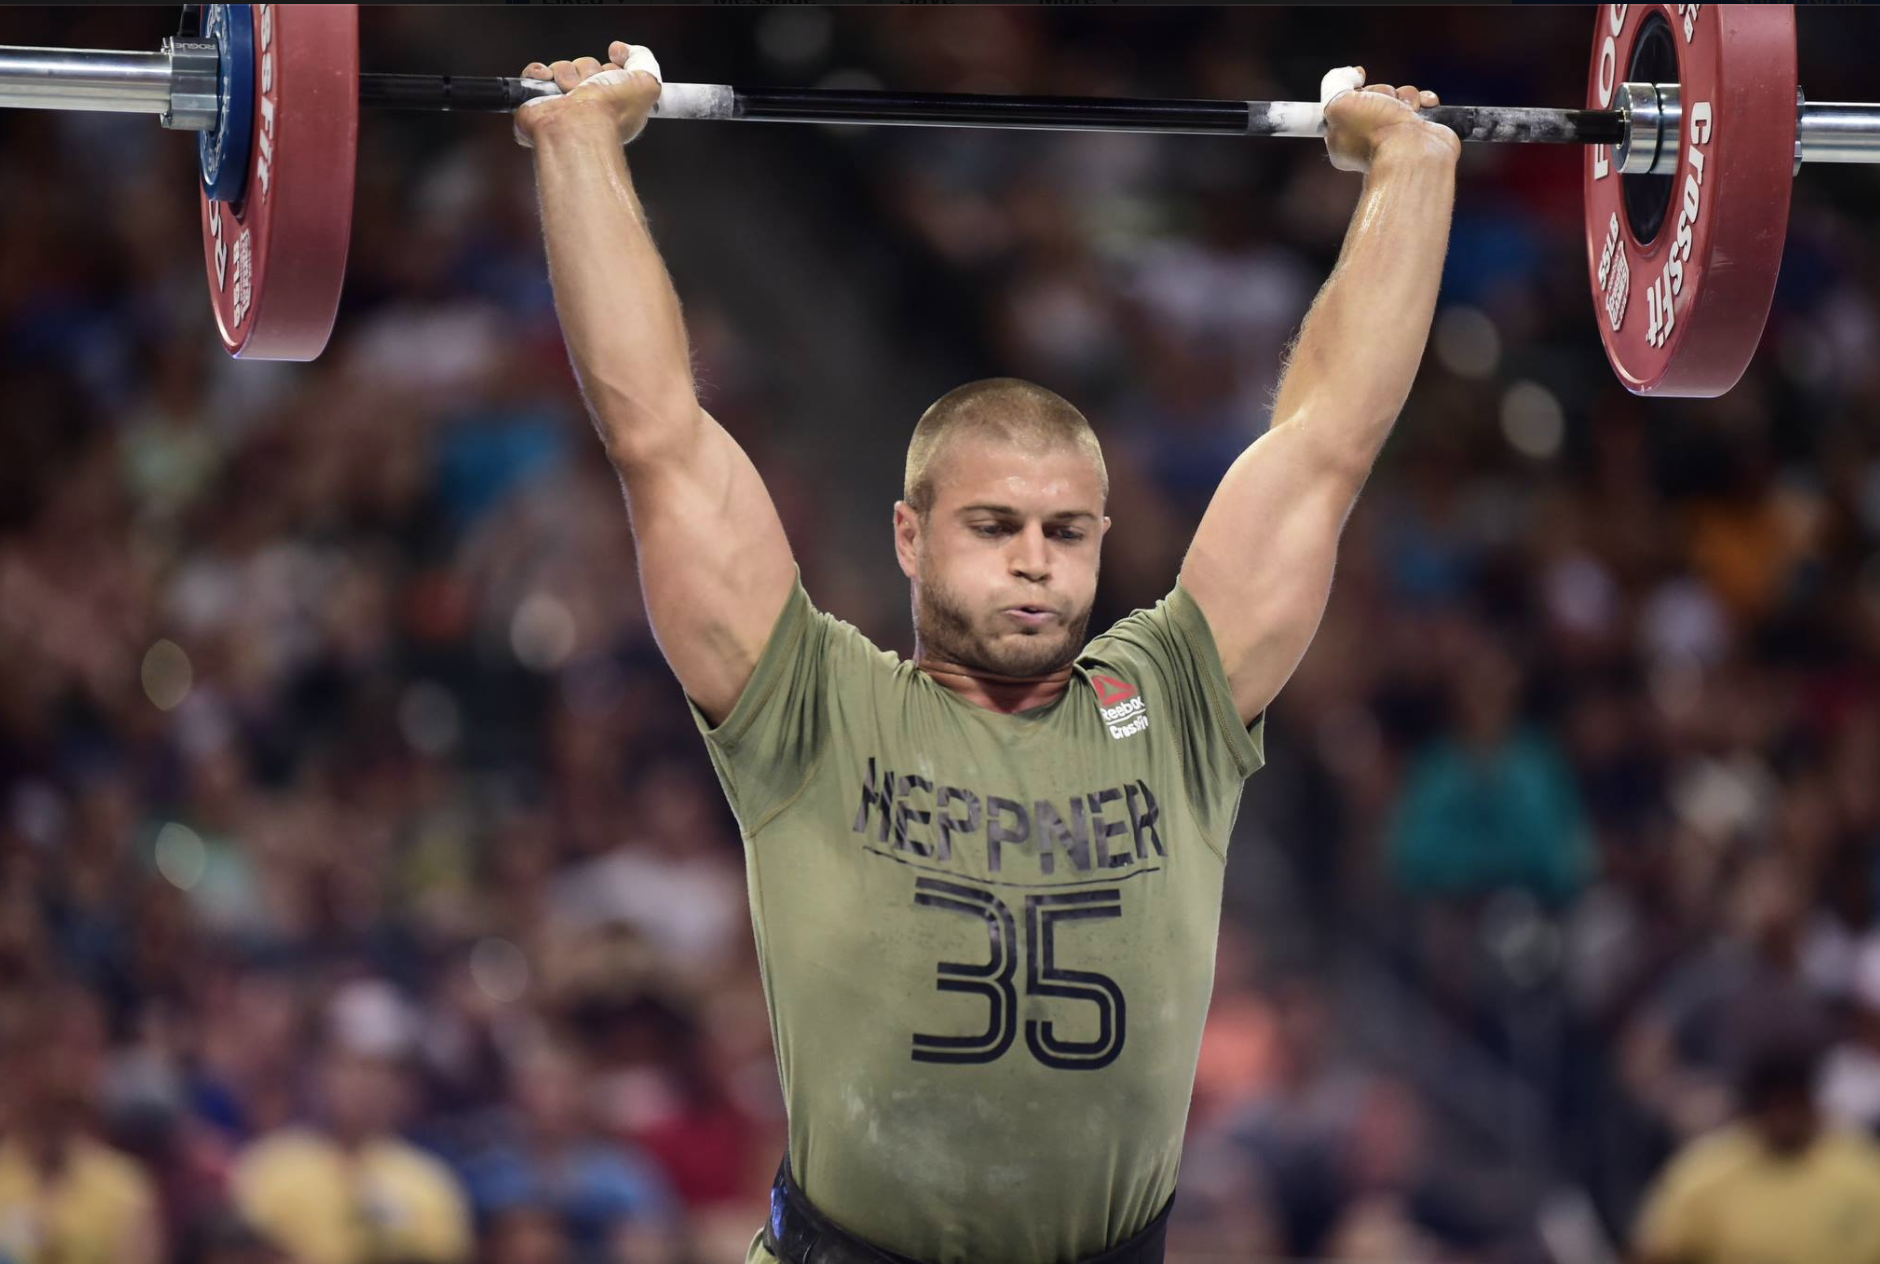 Jacob Heppner - 2016 CrossFit Games - Sigma 120-300 -Copyright CrossFit Inc, 2016, all rights reserved